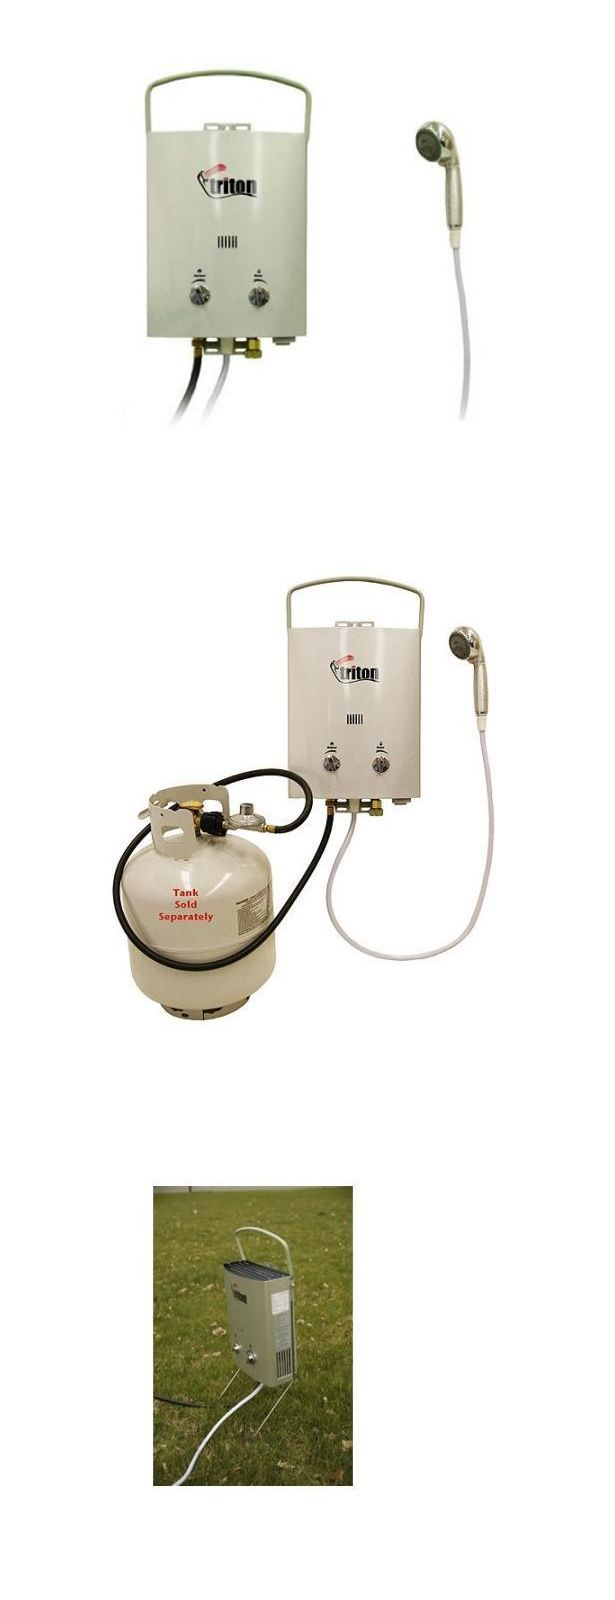 Hot Water Heater Accessories Portable Showers And Accessories 181396 Propane Hot Water Heater